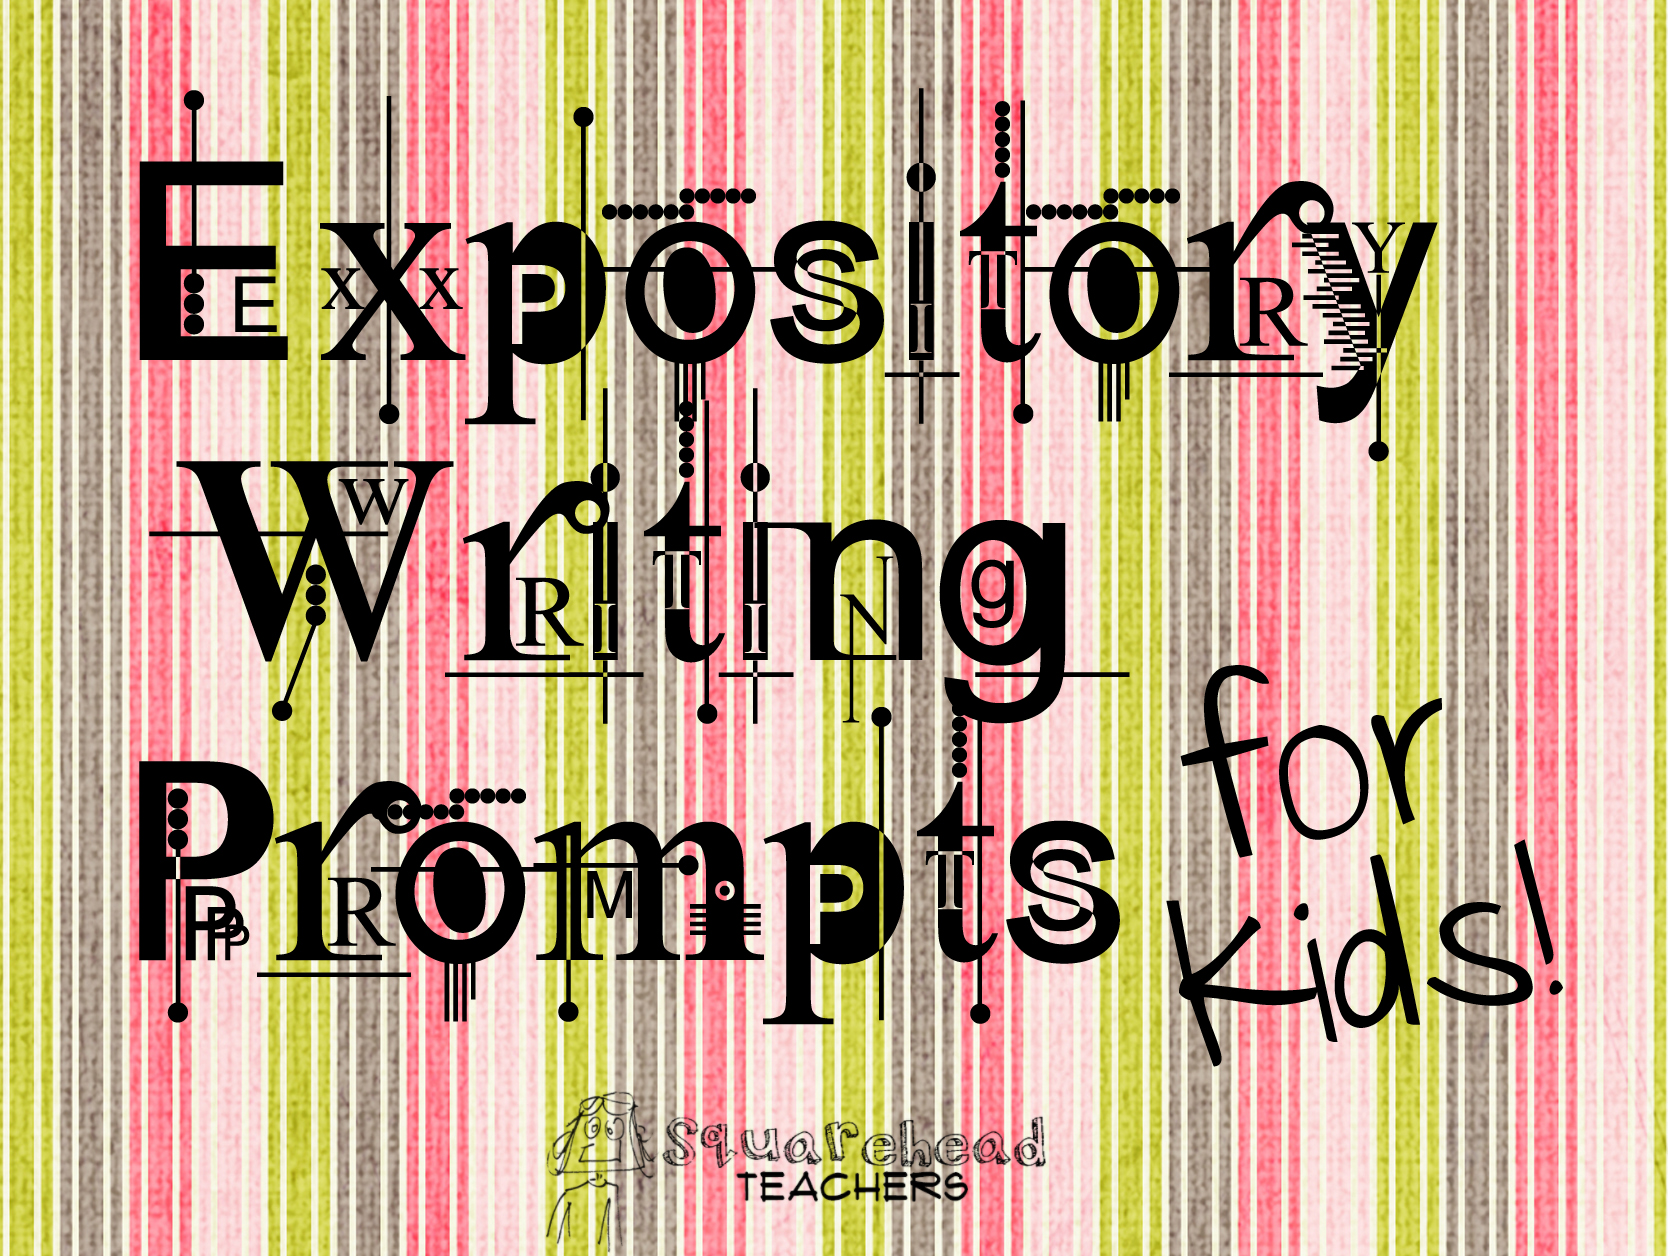 Expository writing assignments